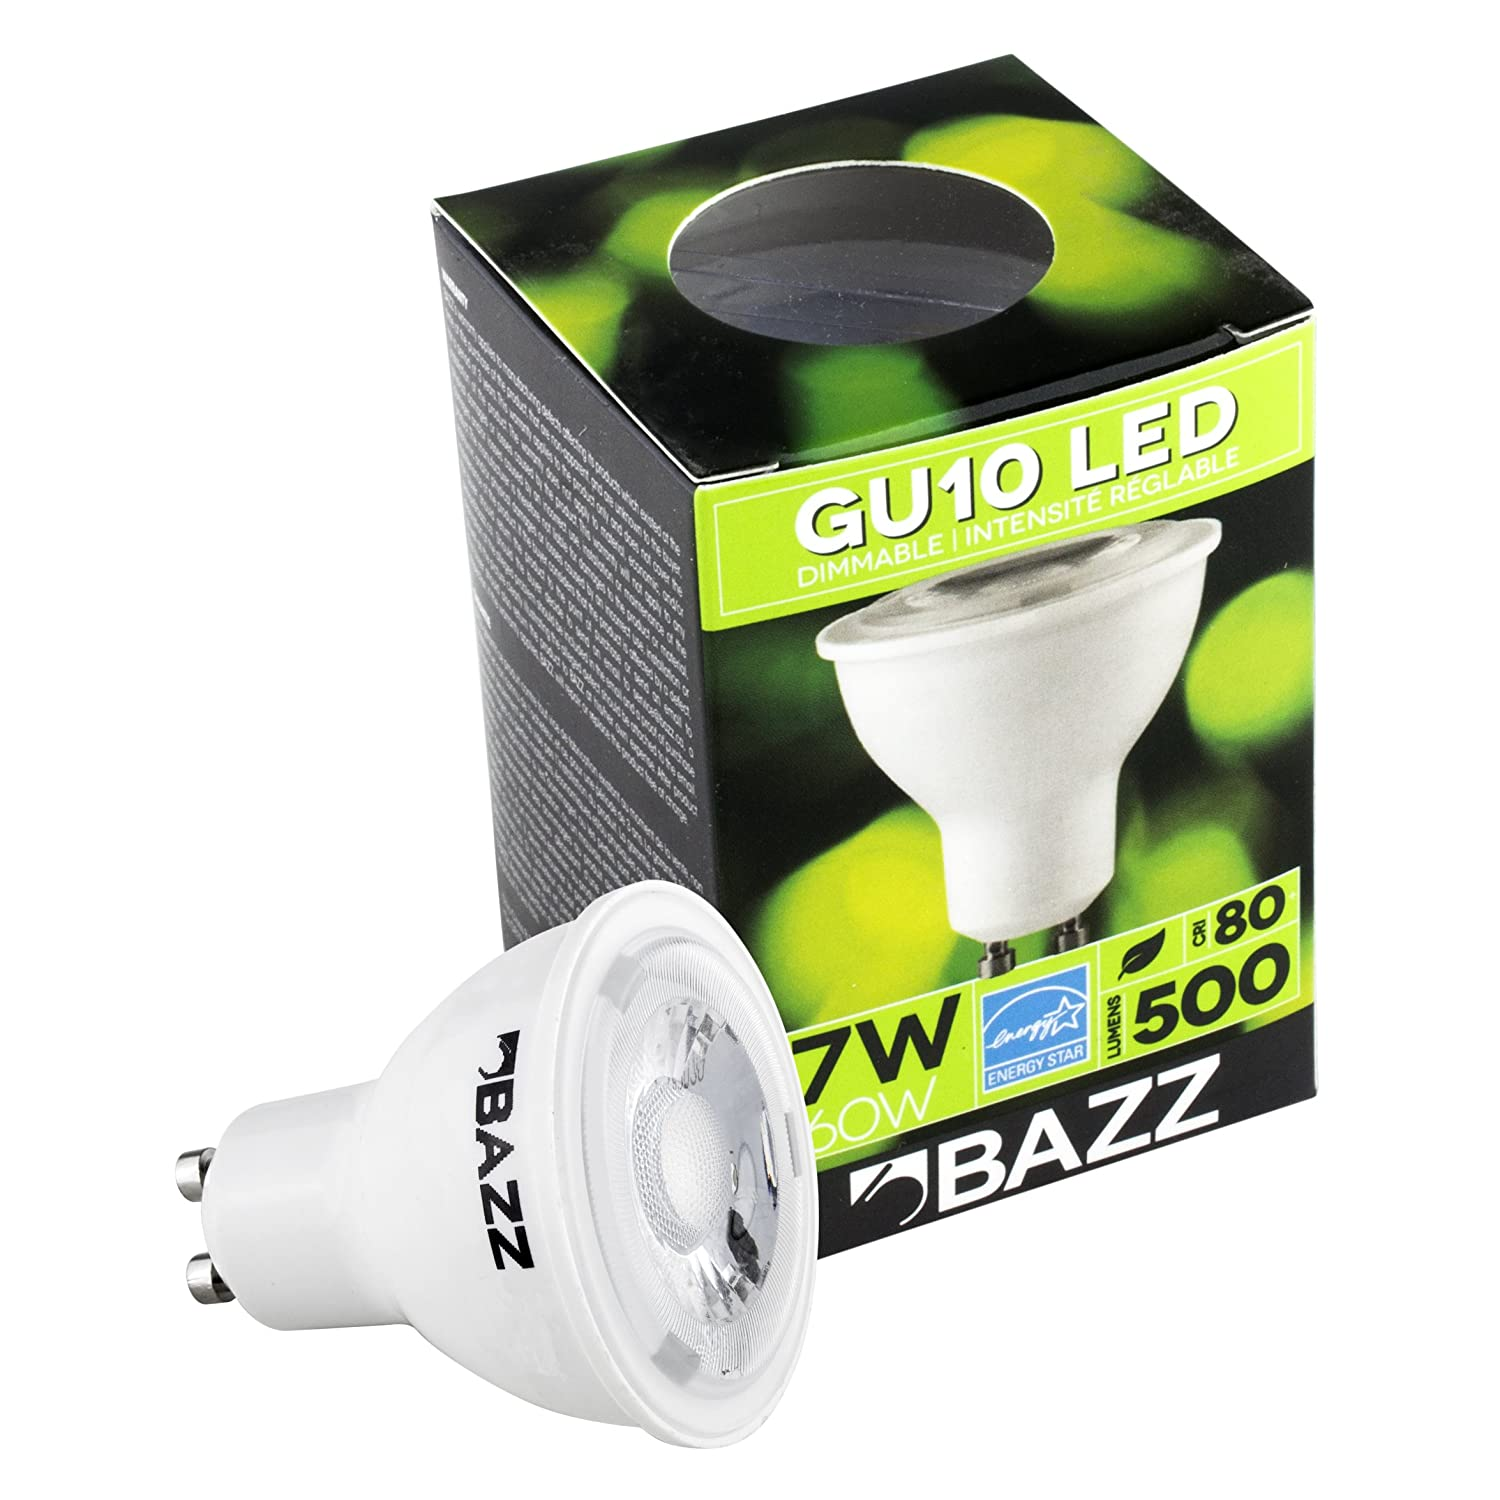 Bazz BGUA7EZ LED 7W GU10 Bulb Energy Star White Long-Lasting Dimmable